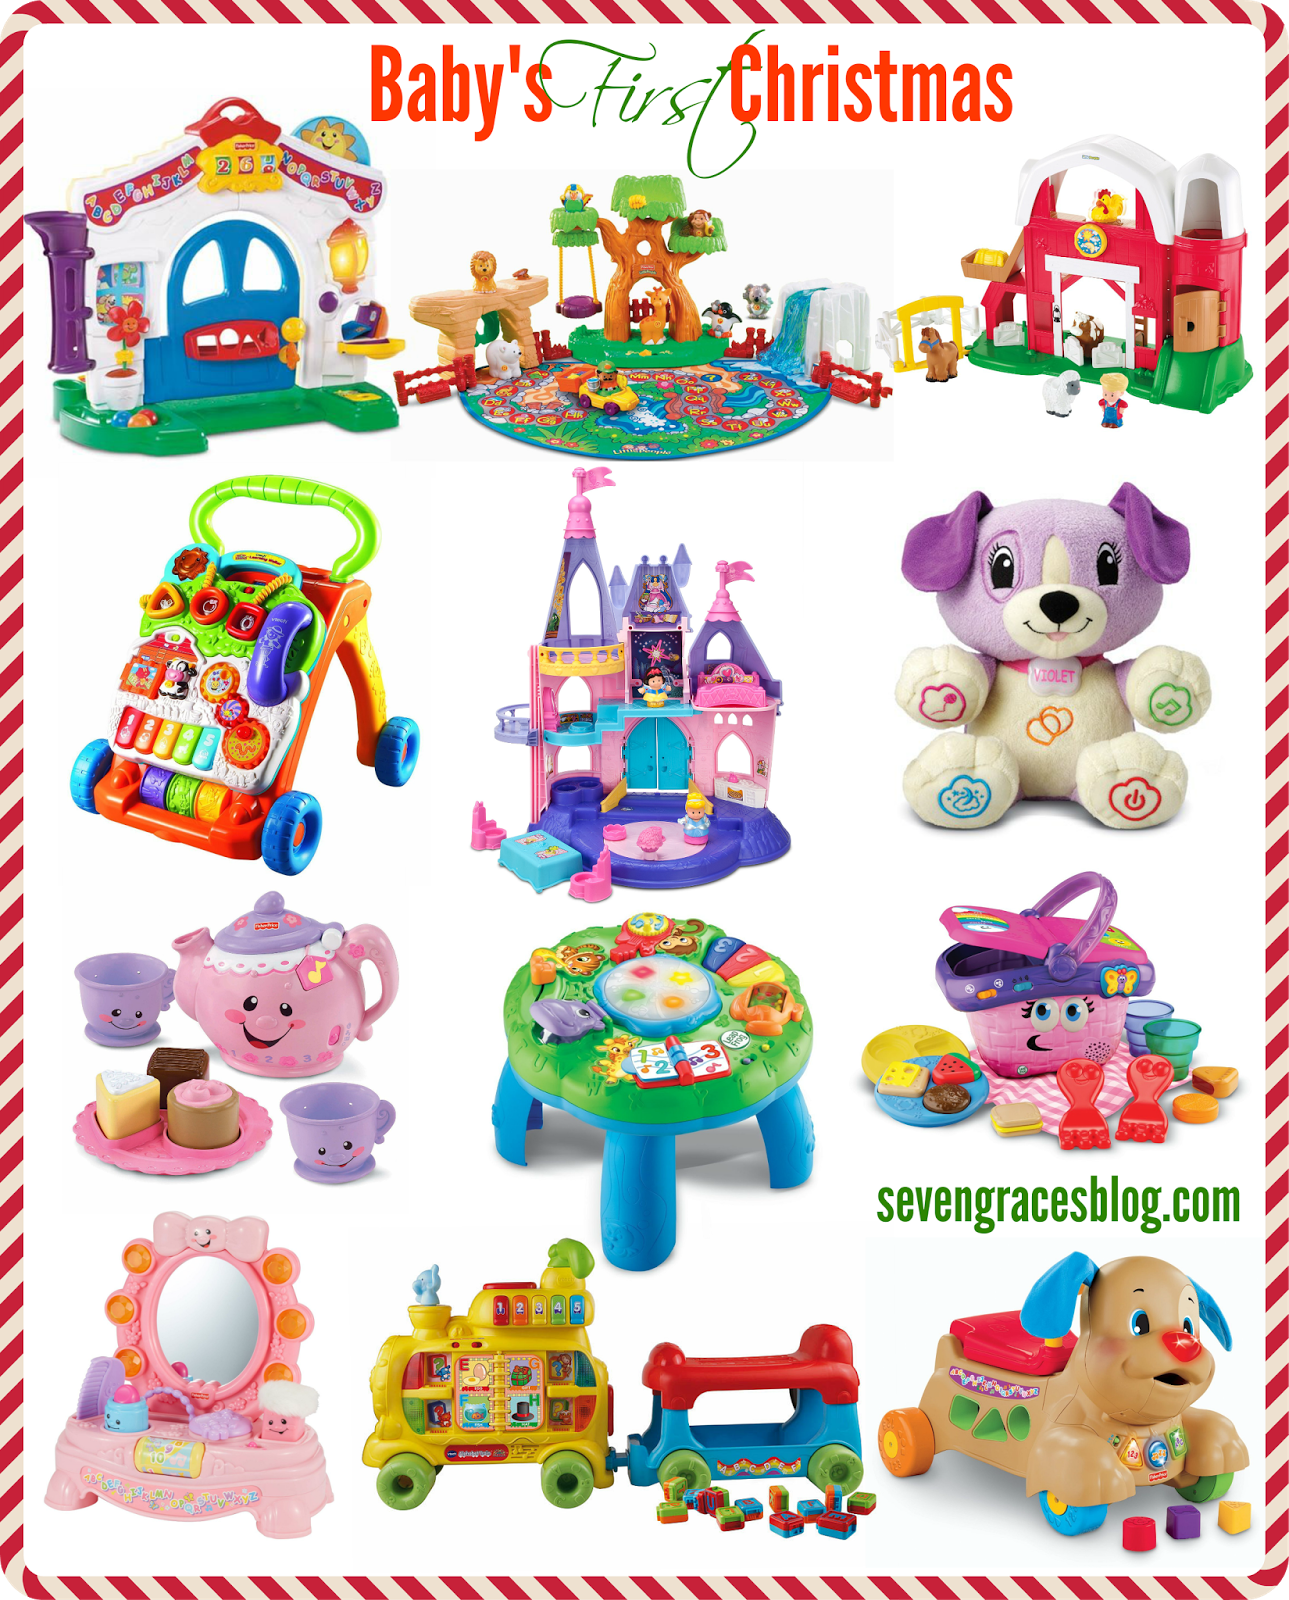 29061fc2101c Best Gifts for Baby's First Christmas #babysfirstchristmas #besttoys  #christmaswishlist #bestgifts